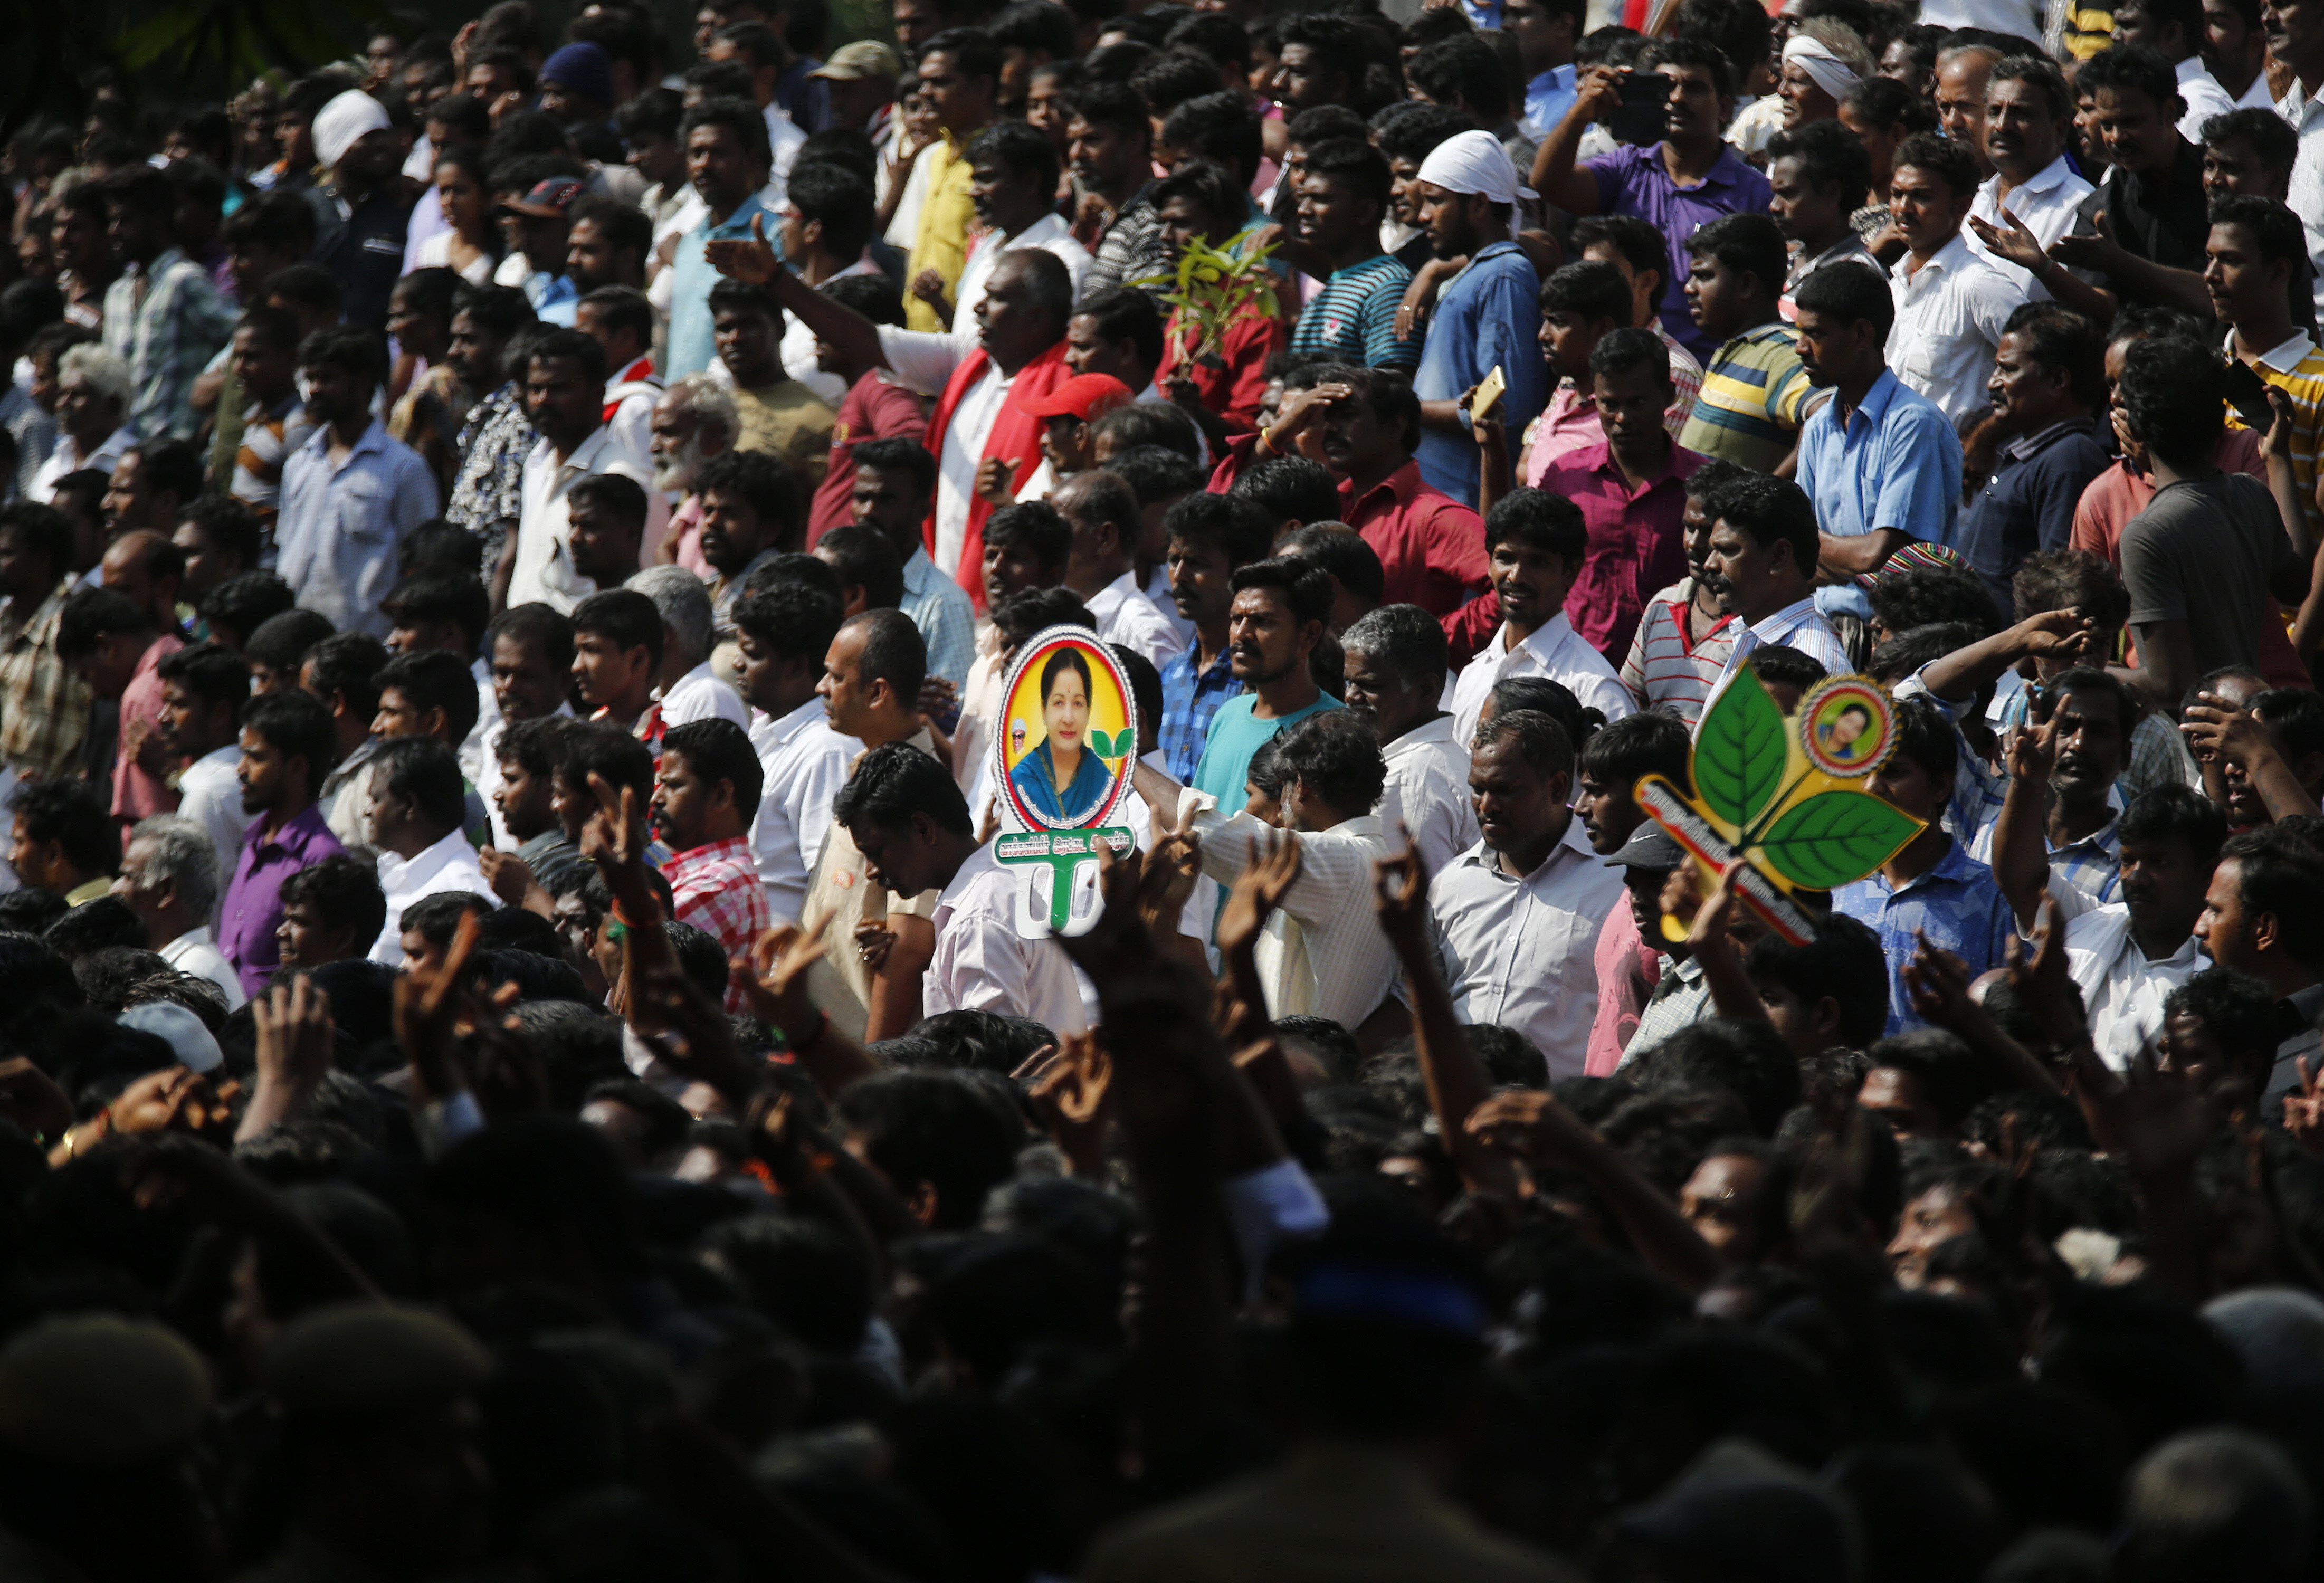 Supporters of India's Tamil Nadu state's former Chief Minister, Jayaram Jayalalithaa, wait to see her body outside an auditorium in Chennai, India, Tuesday, Dec. 6, 2016. Jayalalithaa, the hugely popular south Indian actress who later turned to politics and became the highest elected official in the state of Tamil Nadu, died Monday. She was 68. (AP Photo/Aijaz Rahi)